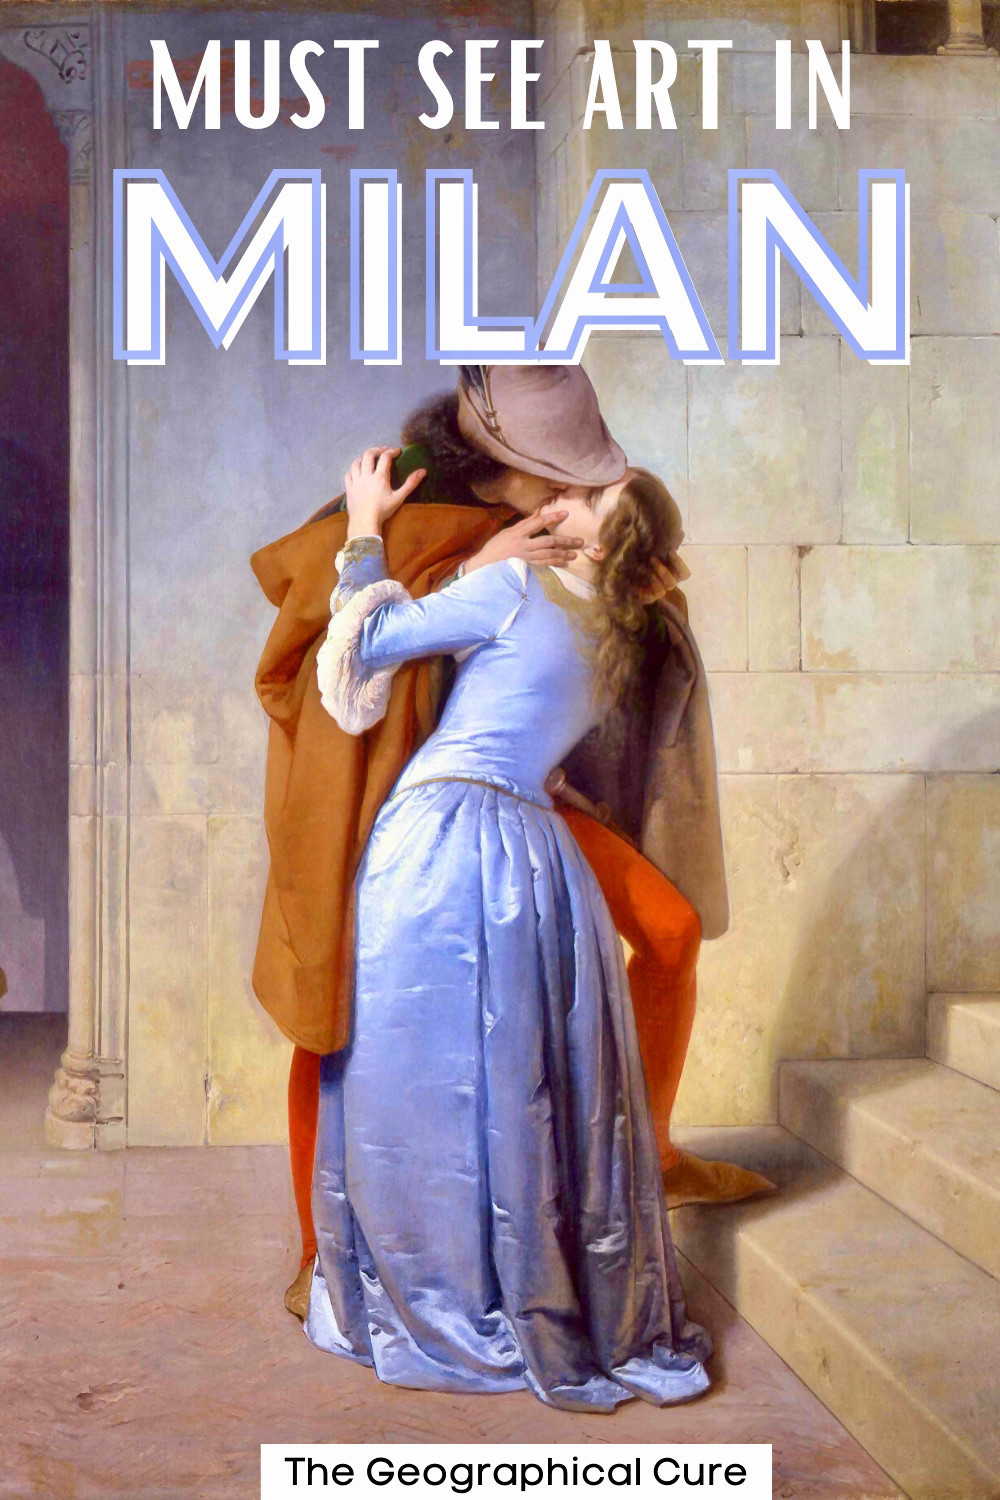 complete guide to the must see art of Milan Italy